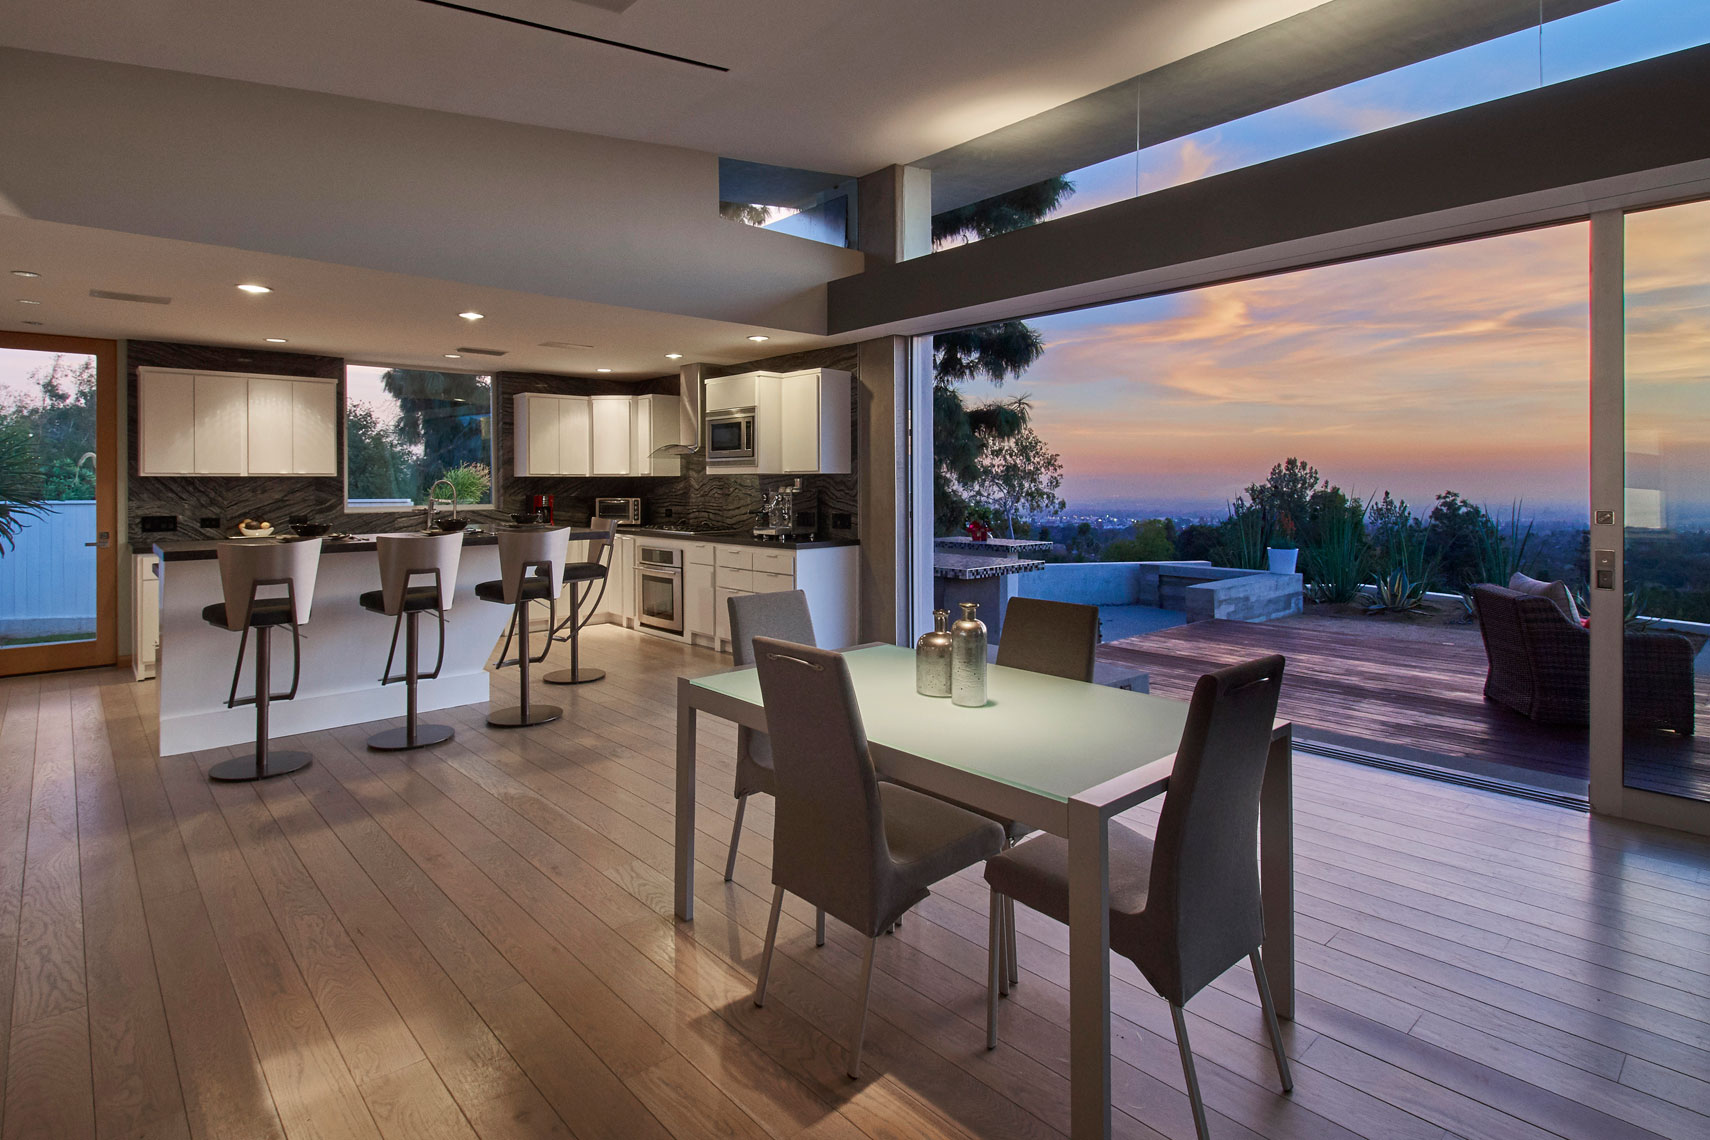 Architectural-photography-of-dining-room-and-kitchen-of-contemporary-Los-Angeles-home-with-open-sliding-glass-door-to-deckatsunset-Joe-Atlas-architectural-photographer-Los-Angeles.